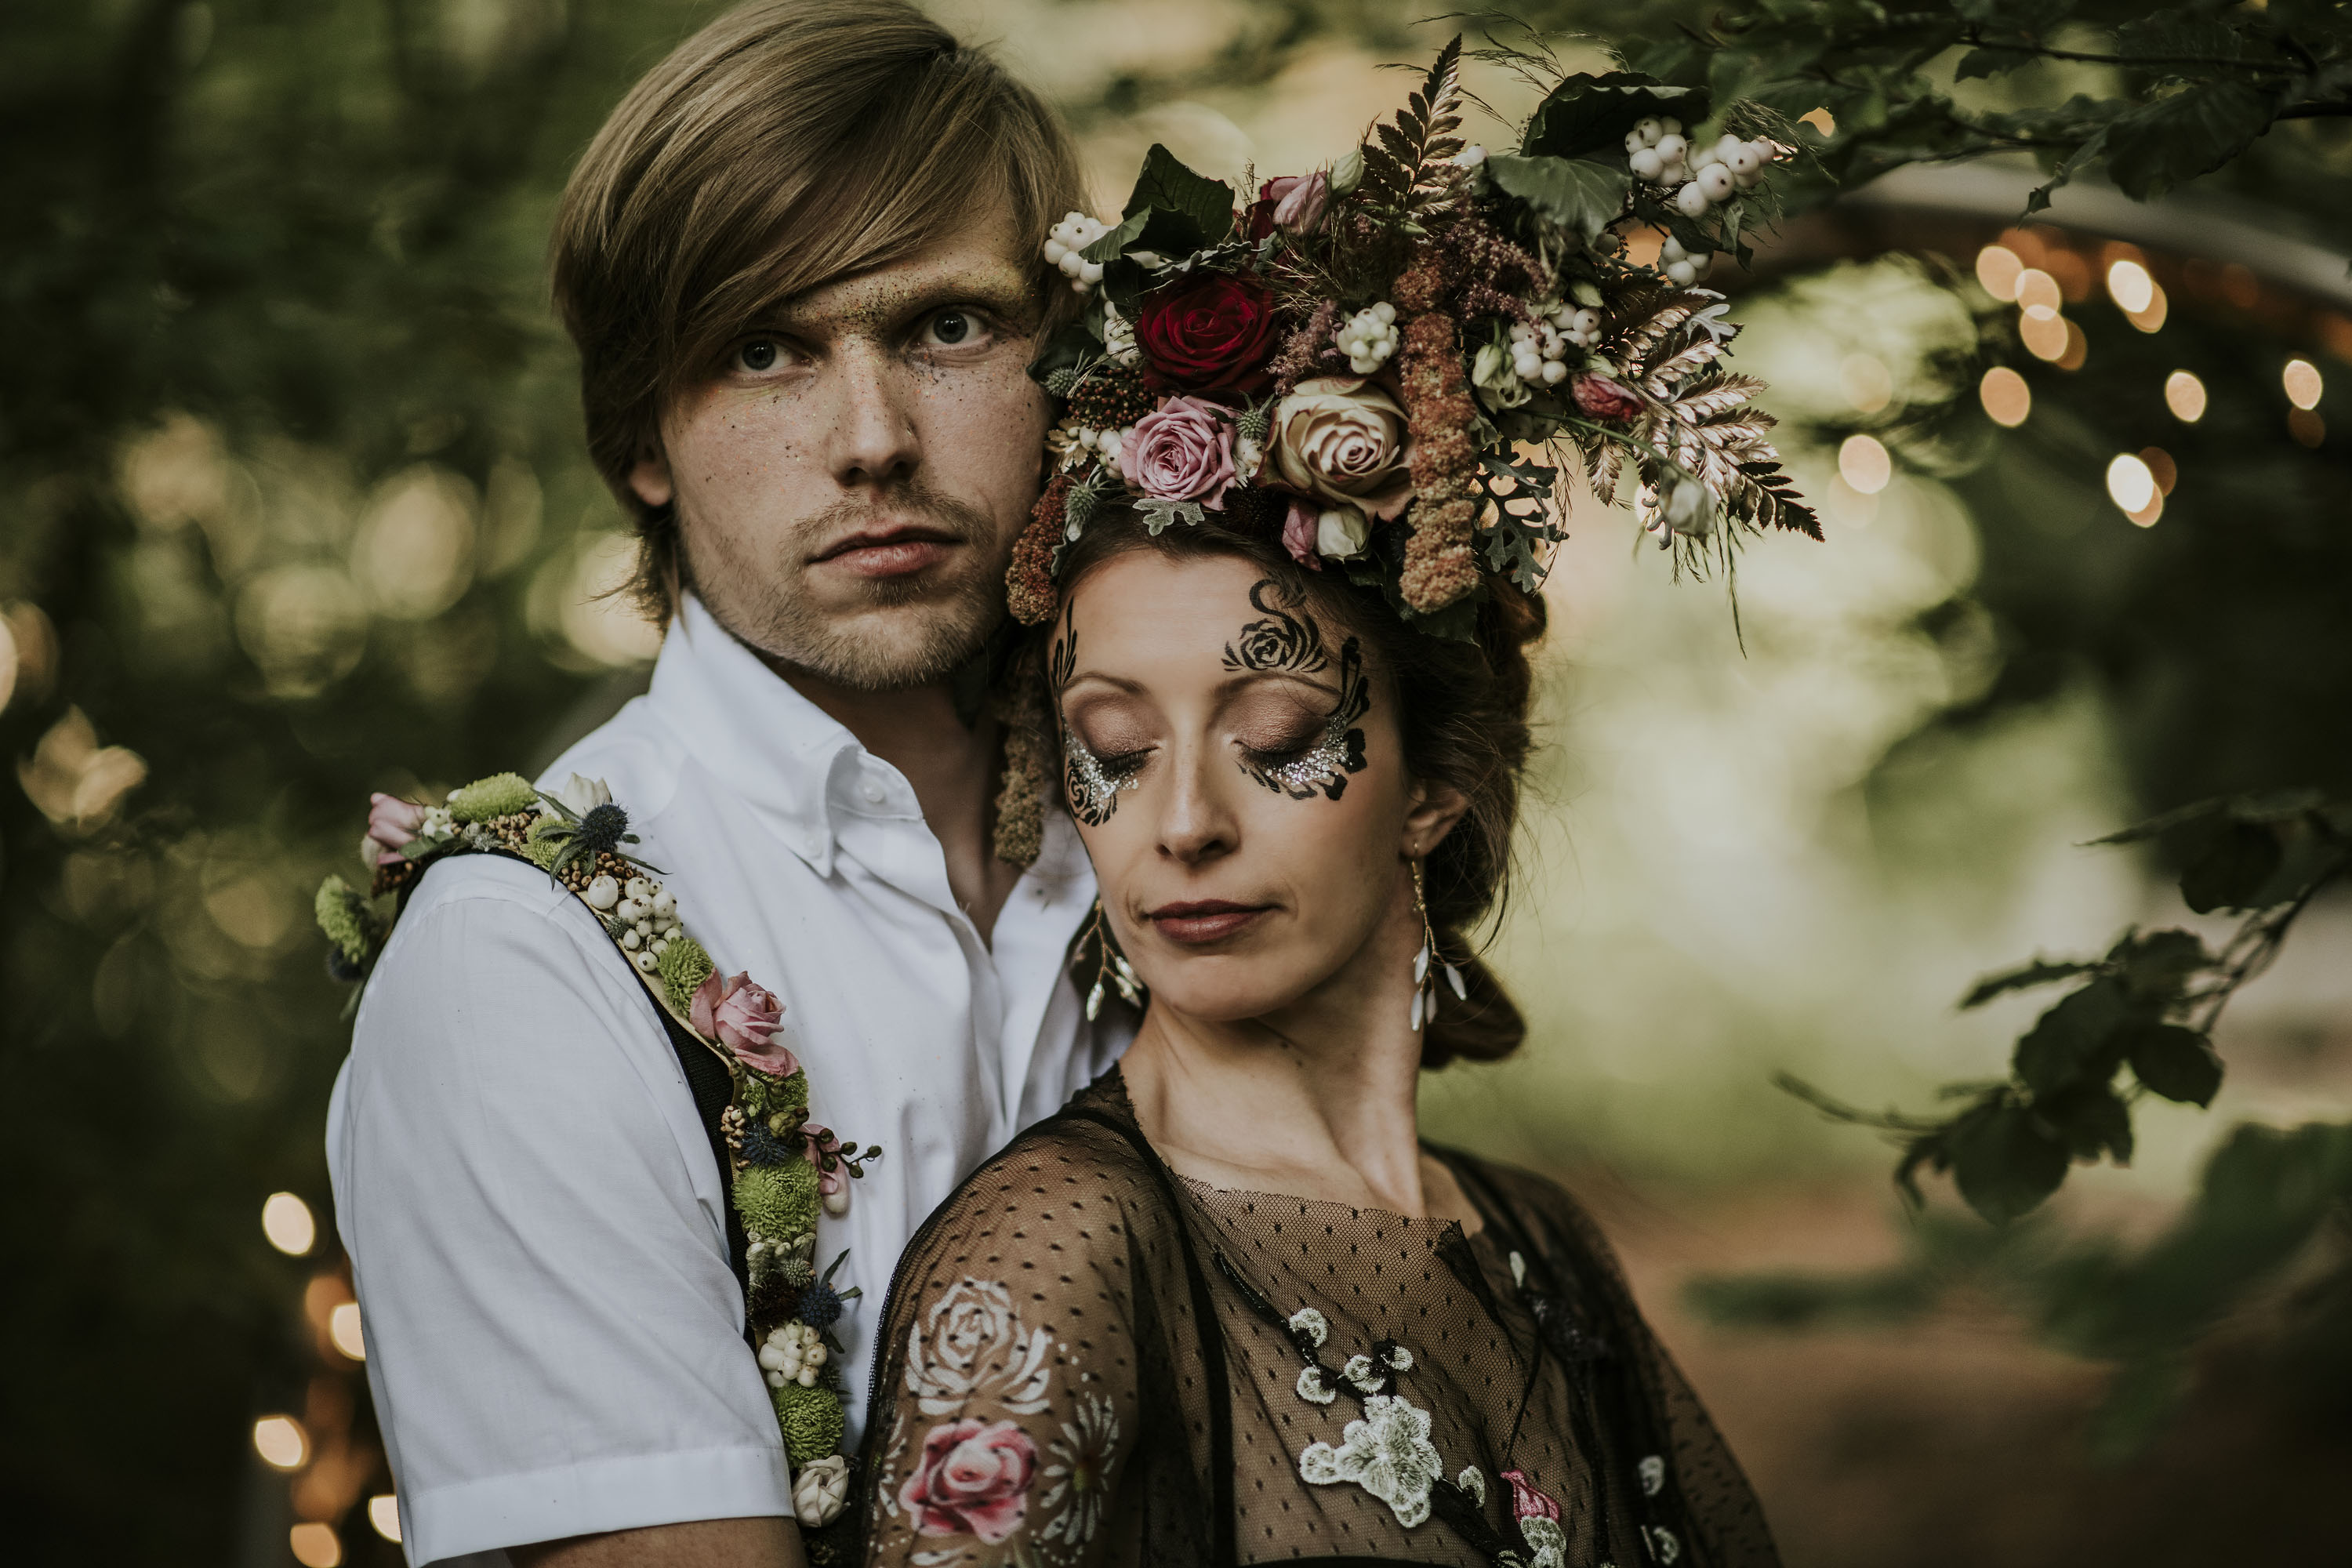 alternative bridal wear, black wedding dress, floral headdress and bridal body paint - groom's floral suspenders